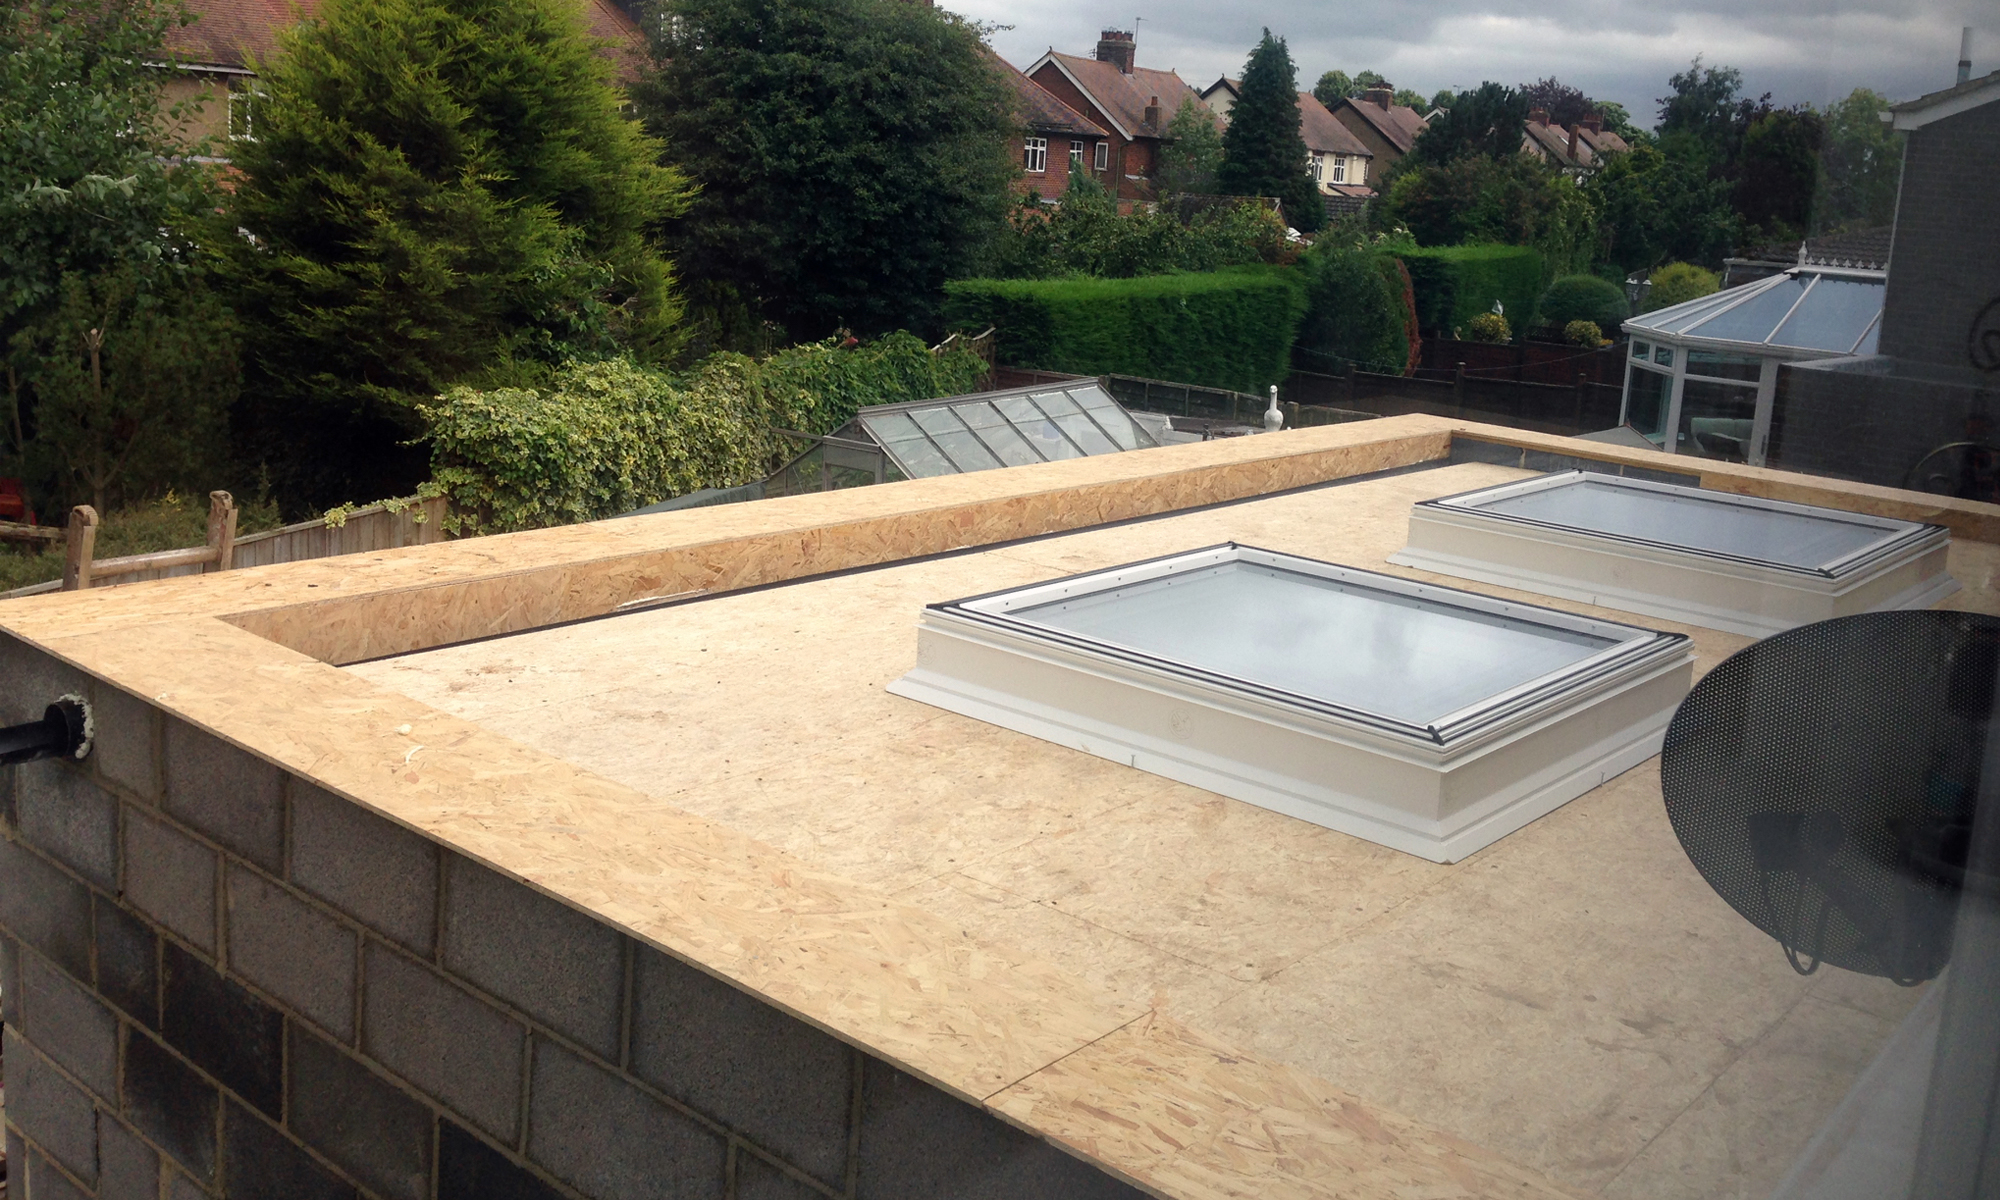 ROWAN DRIVE TIMBER CLAD FLAT ROOF EXTENSION